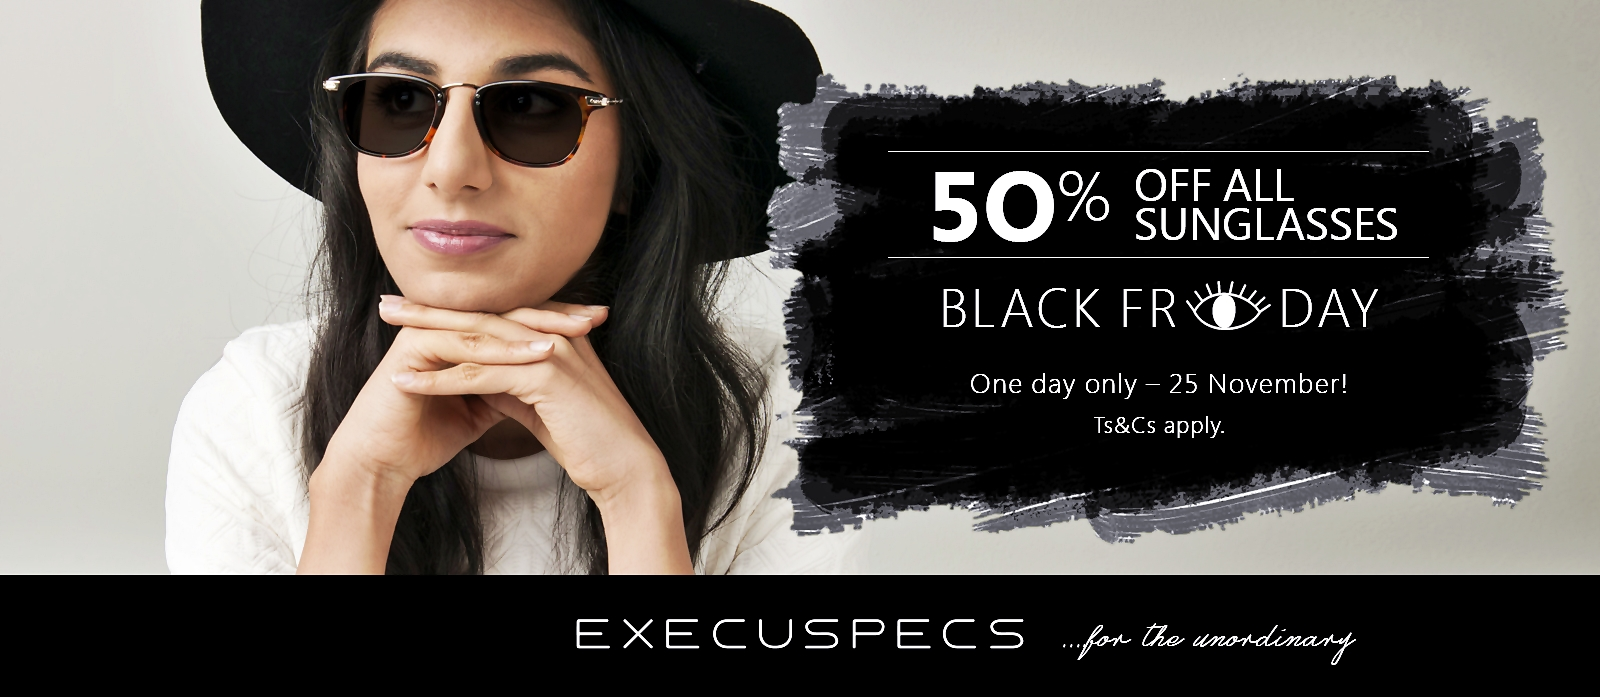 TO BUY: Black Friday - All sunglasses half price! 25 Nov only!